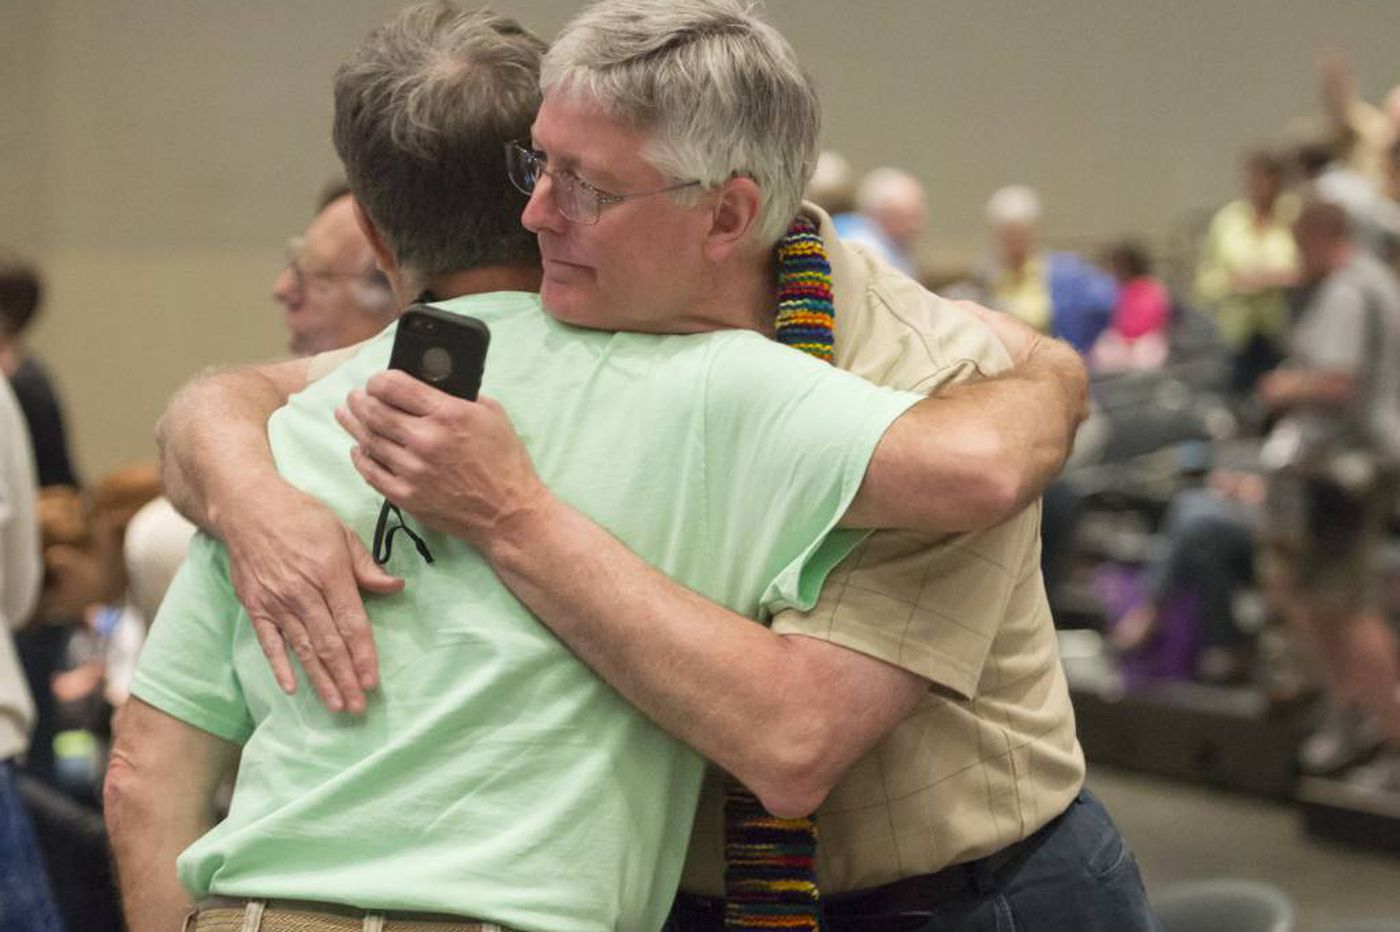 Gay marriage wins Presbyterian vote